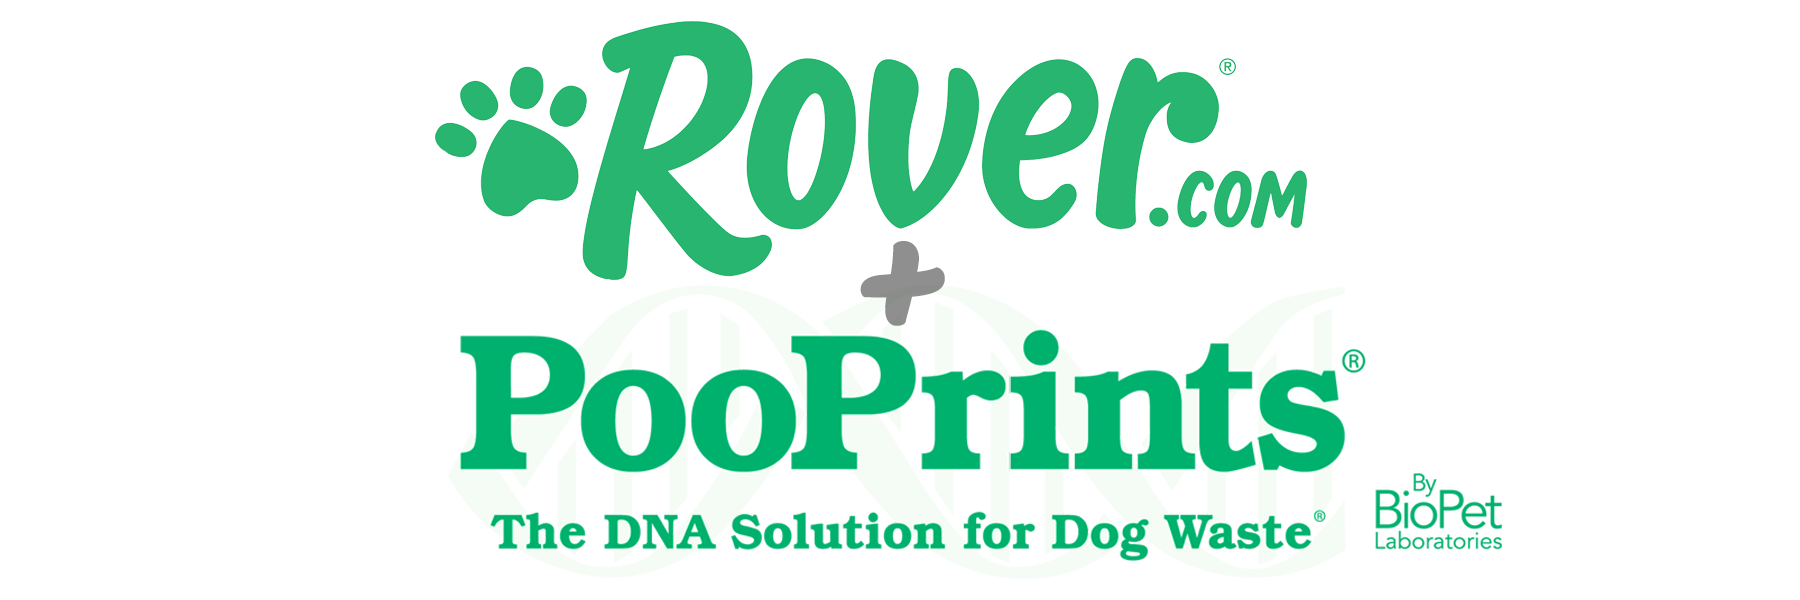 Receive a $50 credit towards reliable pet care options!